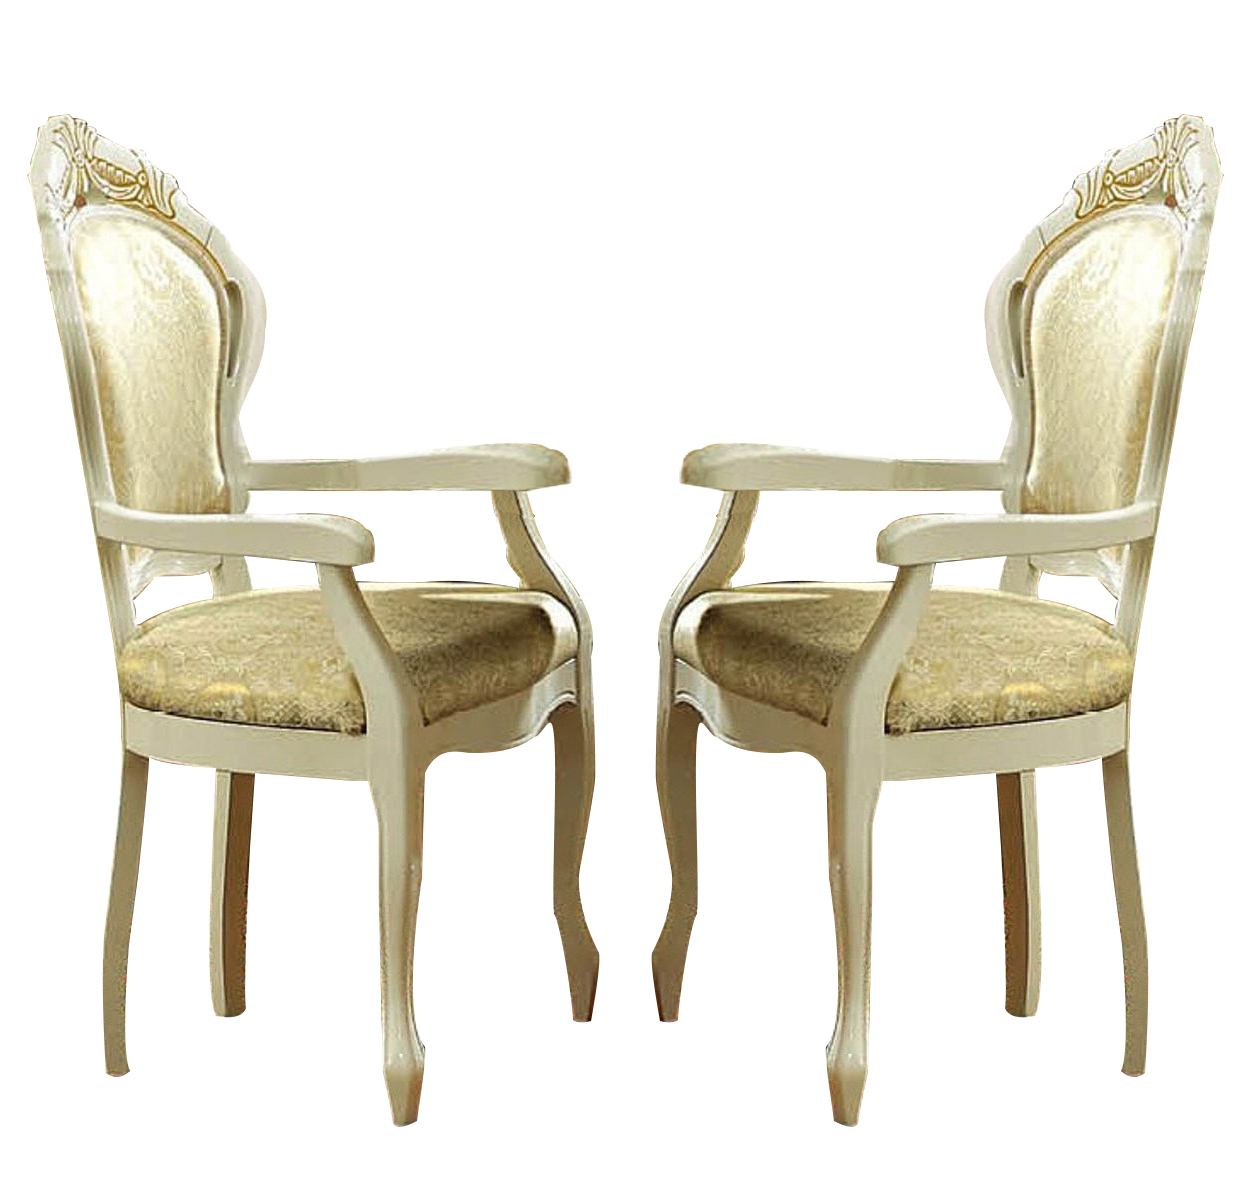 ESF Furniture Leonardo Arm Chair in Ivory (Set of 2)